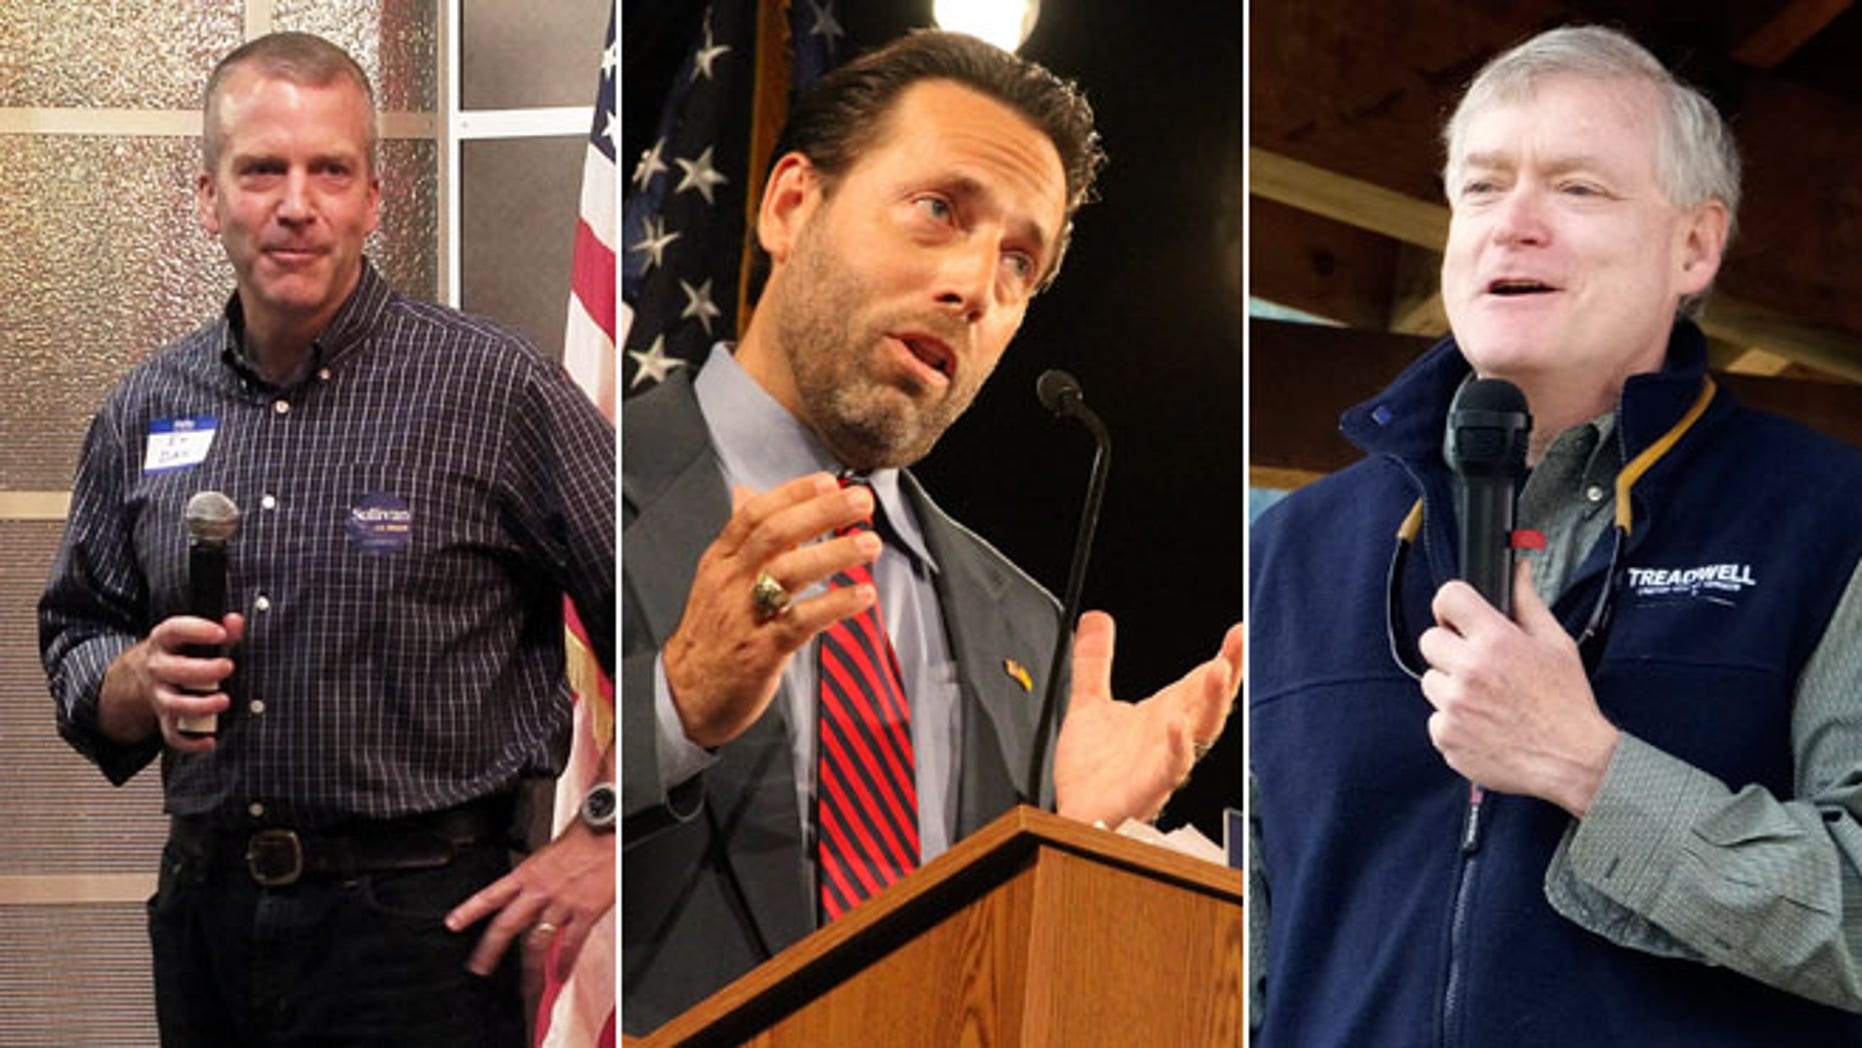 File photos of Alaska Republican U.S. Senate candidates Dan Sullivan at a campaign event in Juneau, Alaska on Aug. 9, 2014, Joe Miller during a debate in Anchorage on Aug. 10, 2014 and Mead Treadwell in Douglas, Alaska on June 21, 2014.